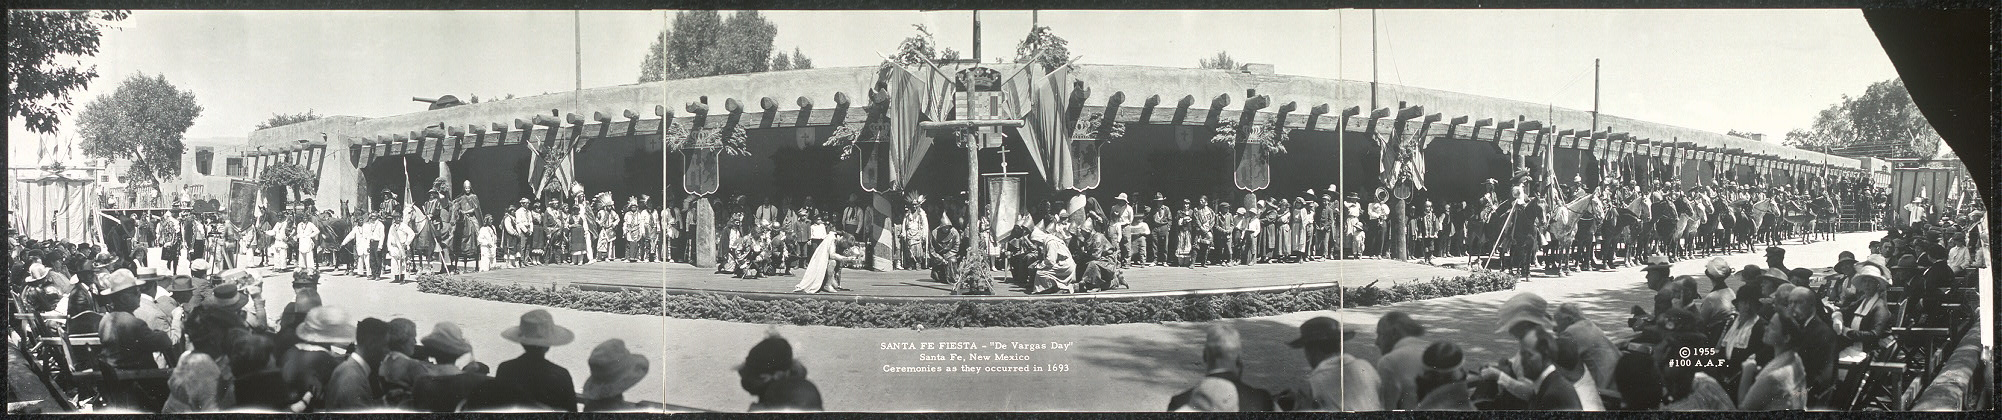 "1921 photo of ""de Vargas Days"" ceremonies in Santa Fe. Courtesy of the Library of Congress."